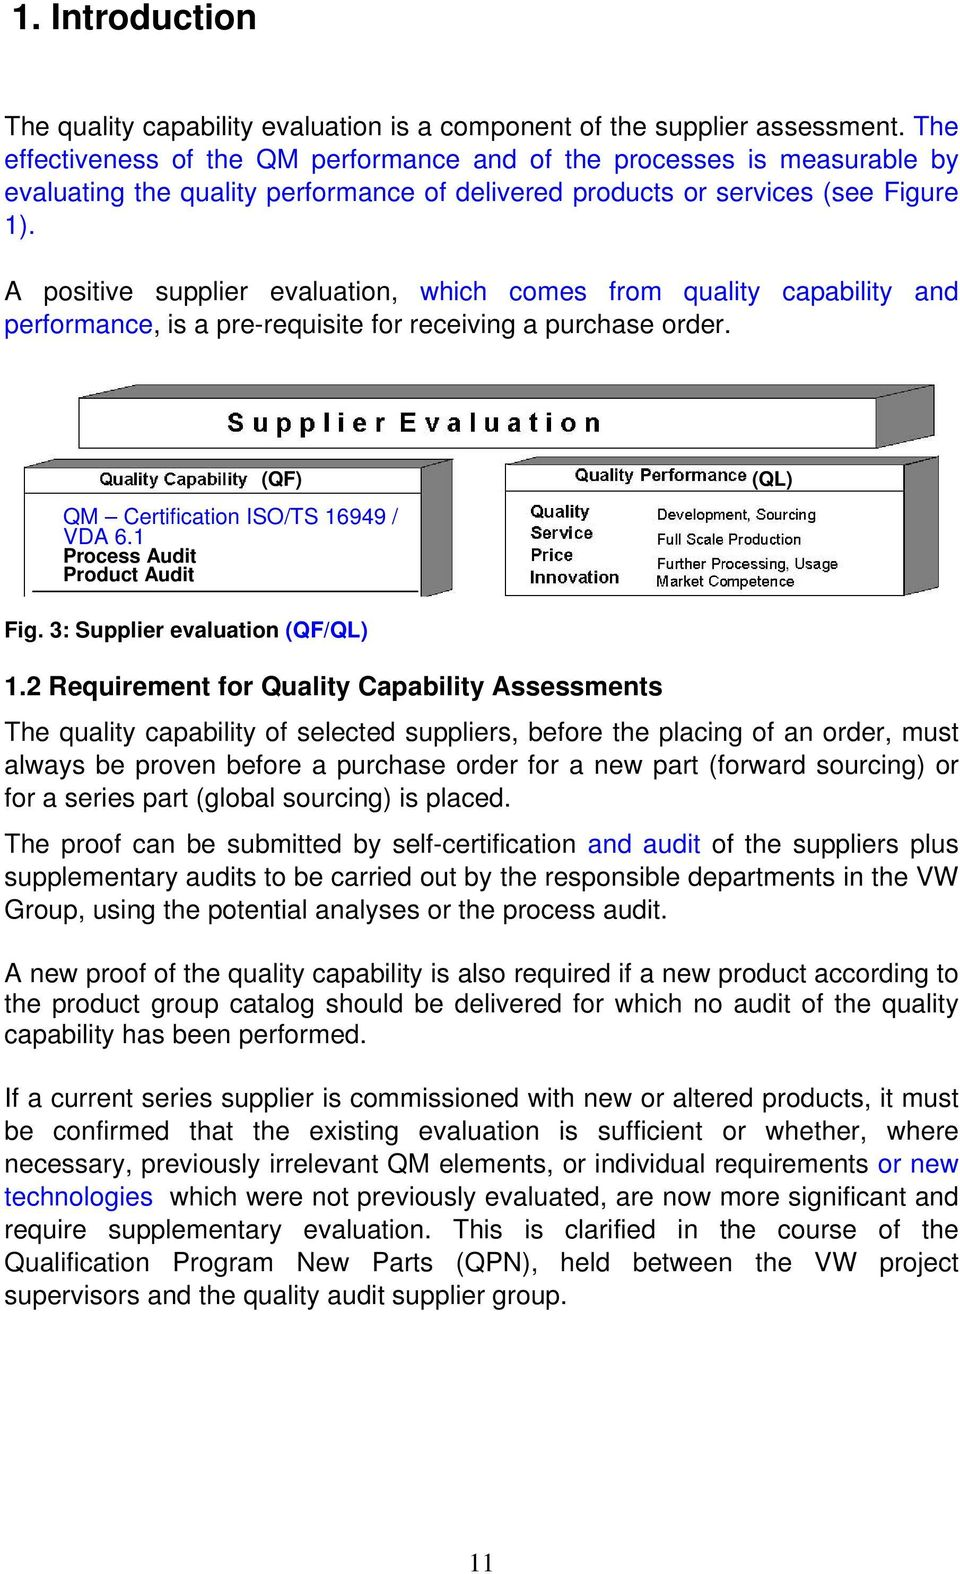 Volkswagen Ag Quality Capability Suppliers Assessment Guidelines Pdf Process Flow Diagram Ts 16949 A Positive Supplier Evaluation Which Comes From And Performance Is Pre